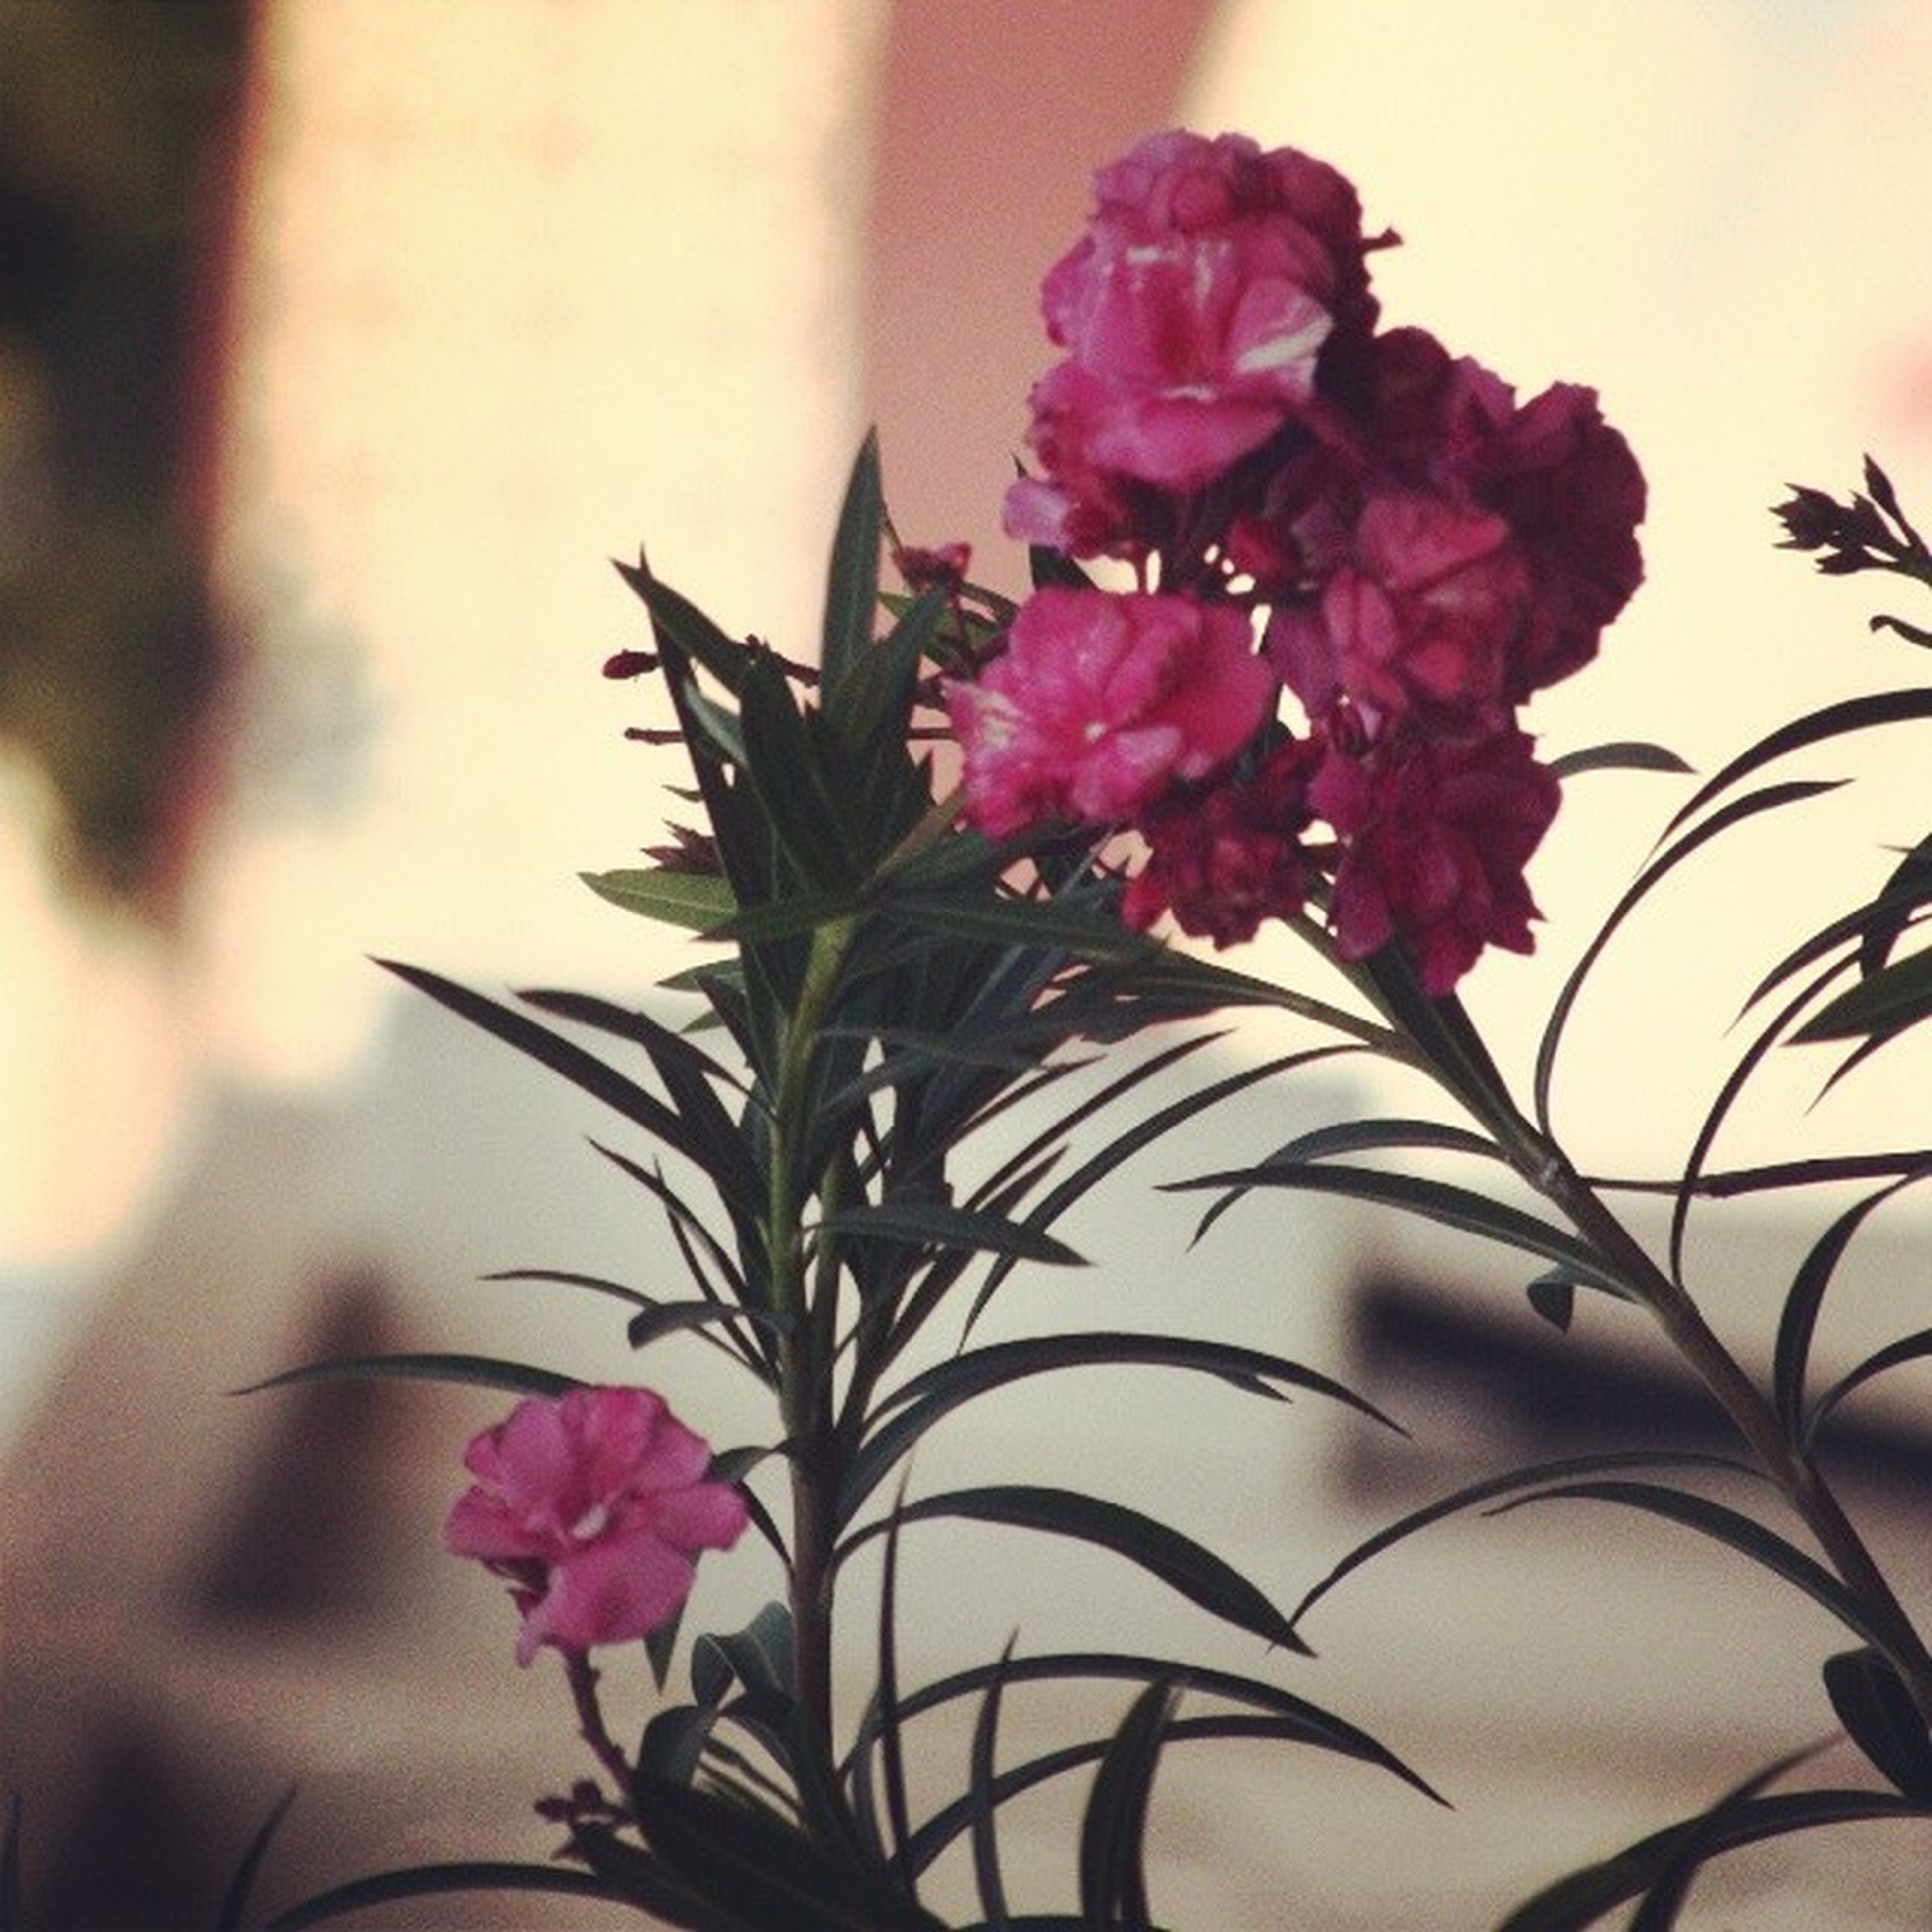 flower, freshness, fragility, petal, flower head, growth, beauty in nature, pink color, plant, blooming, nature, close-up, focus on foreground, in bloom, leaf, rose - flower, blossom, stem, bunch of flowers, day